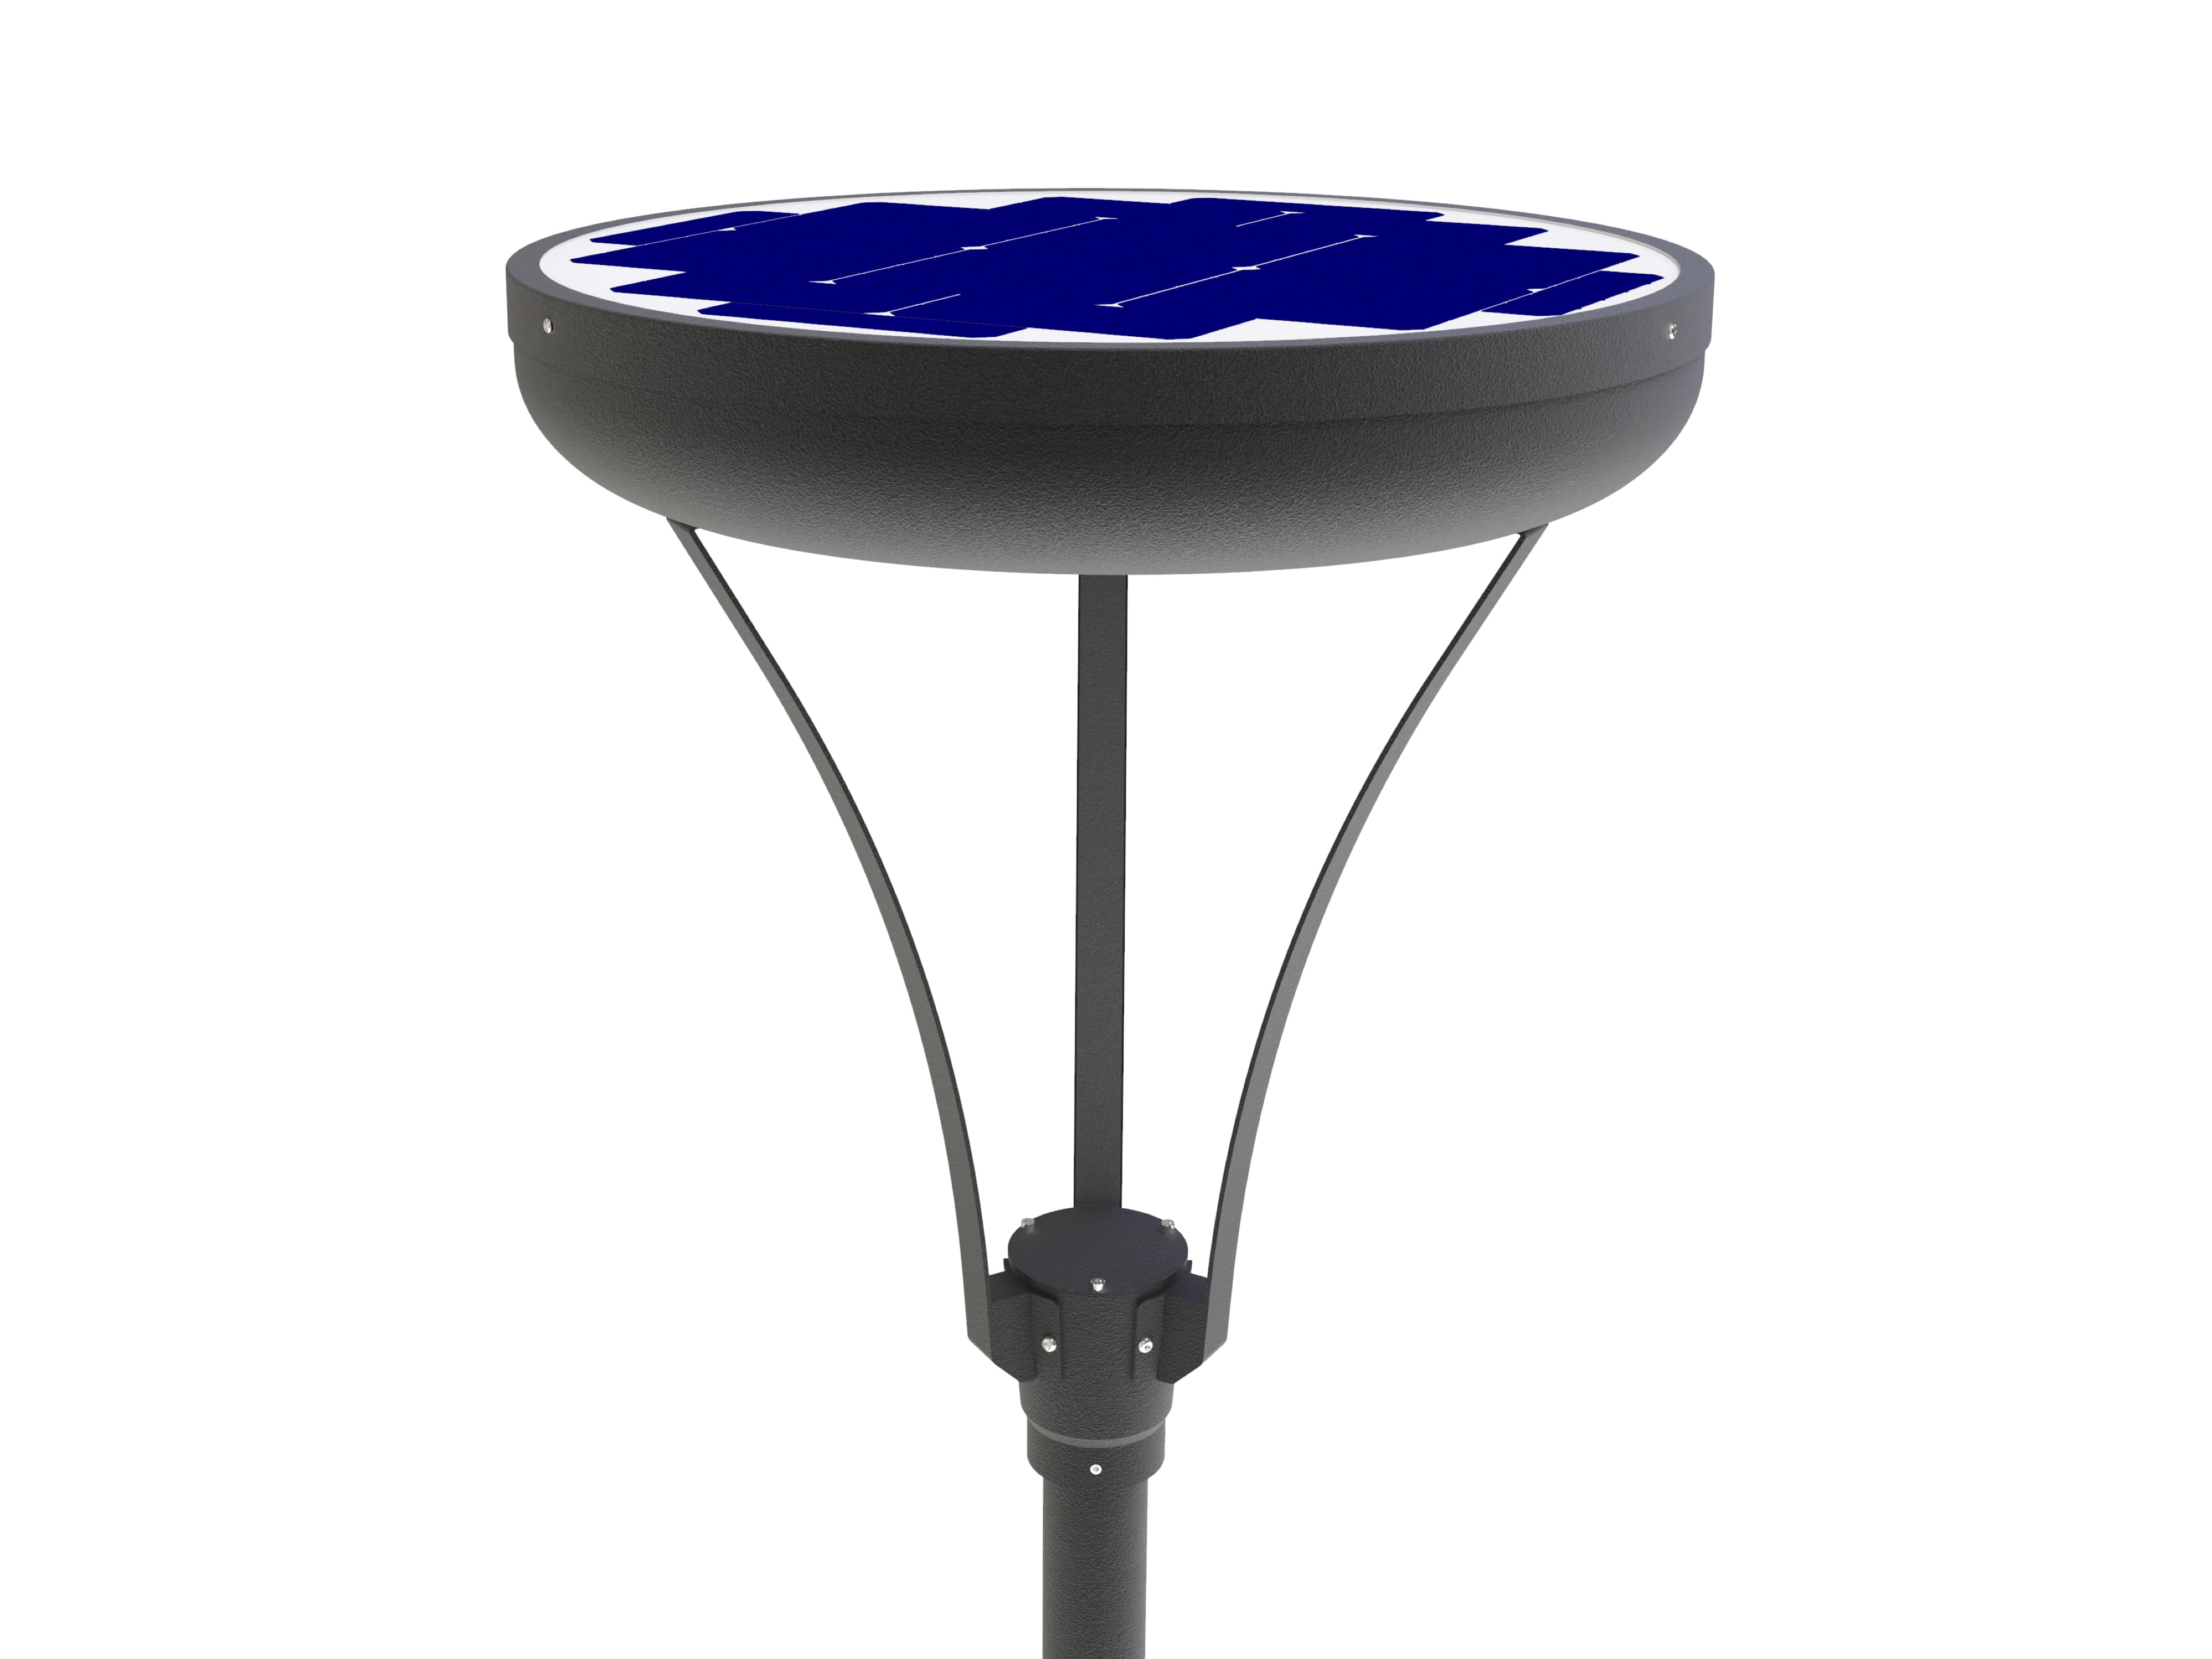 All-in-one solar garden light, smooth design with hybrid solution 30 to 60 watts